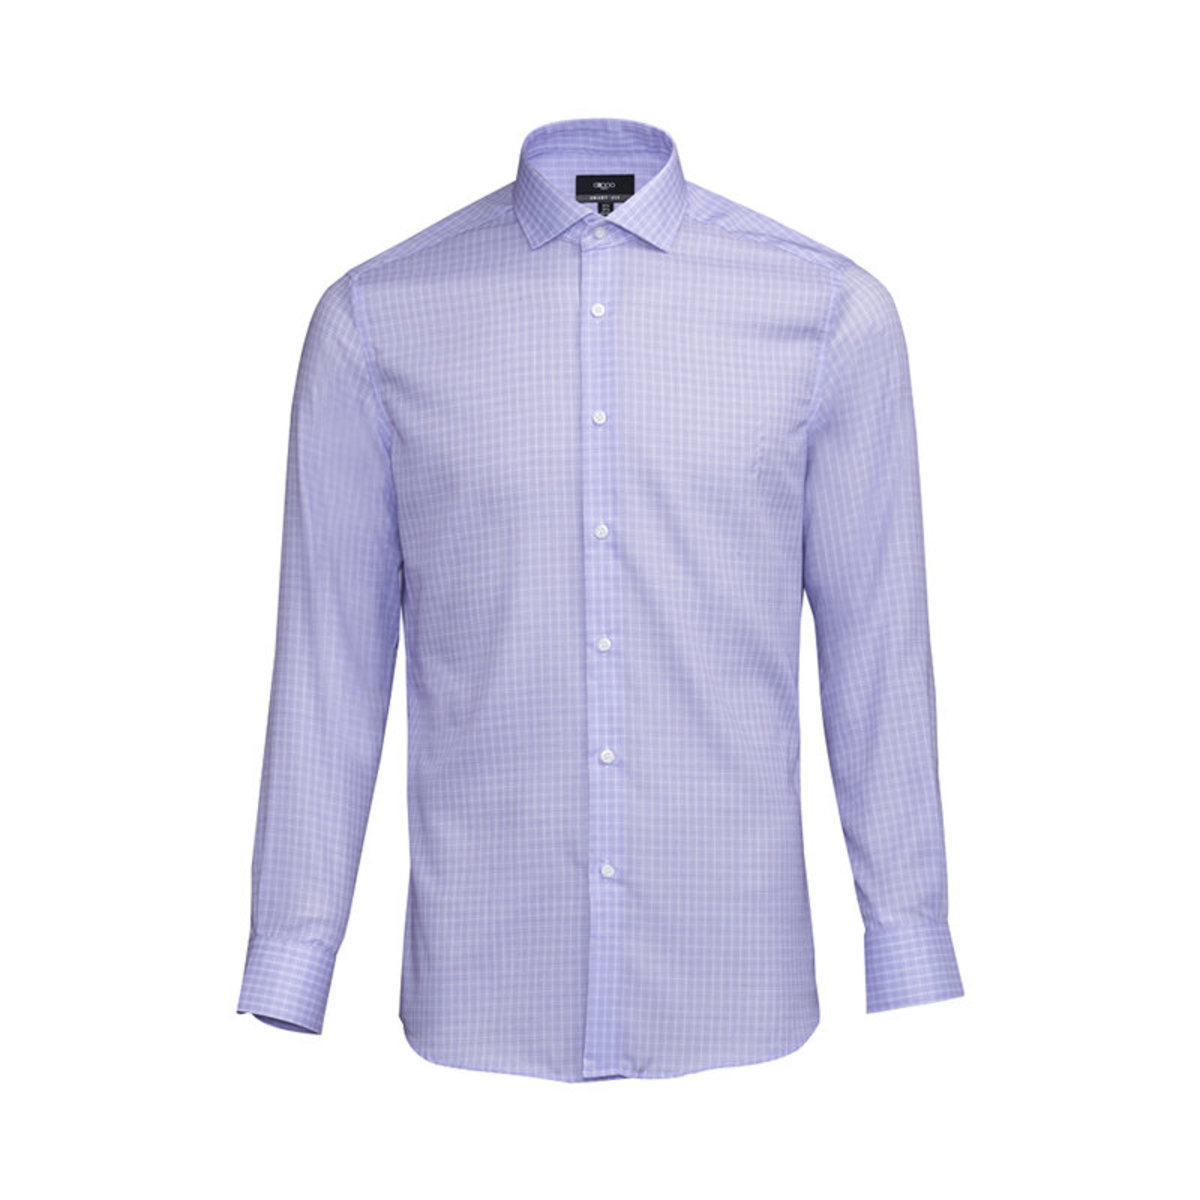 Men's 100% Cotton Checked Long Sleeves Shirt (Lavender)